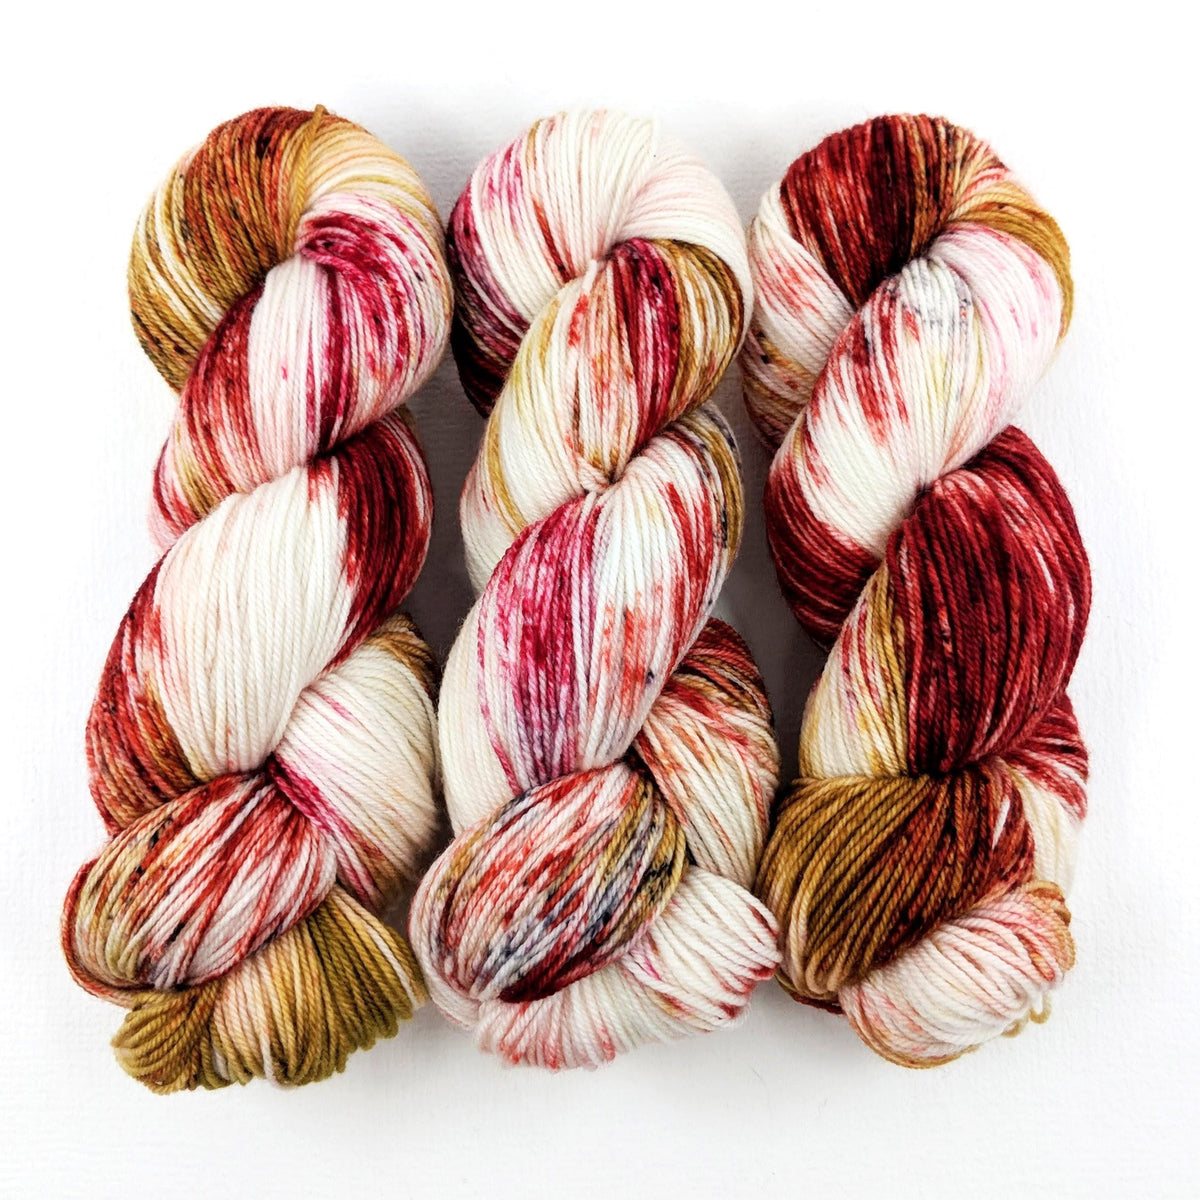 Take Me To Your Stash in Fingering / Sock Weight